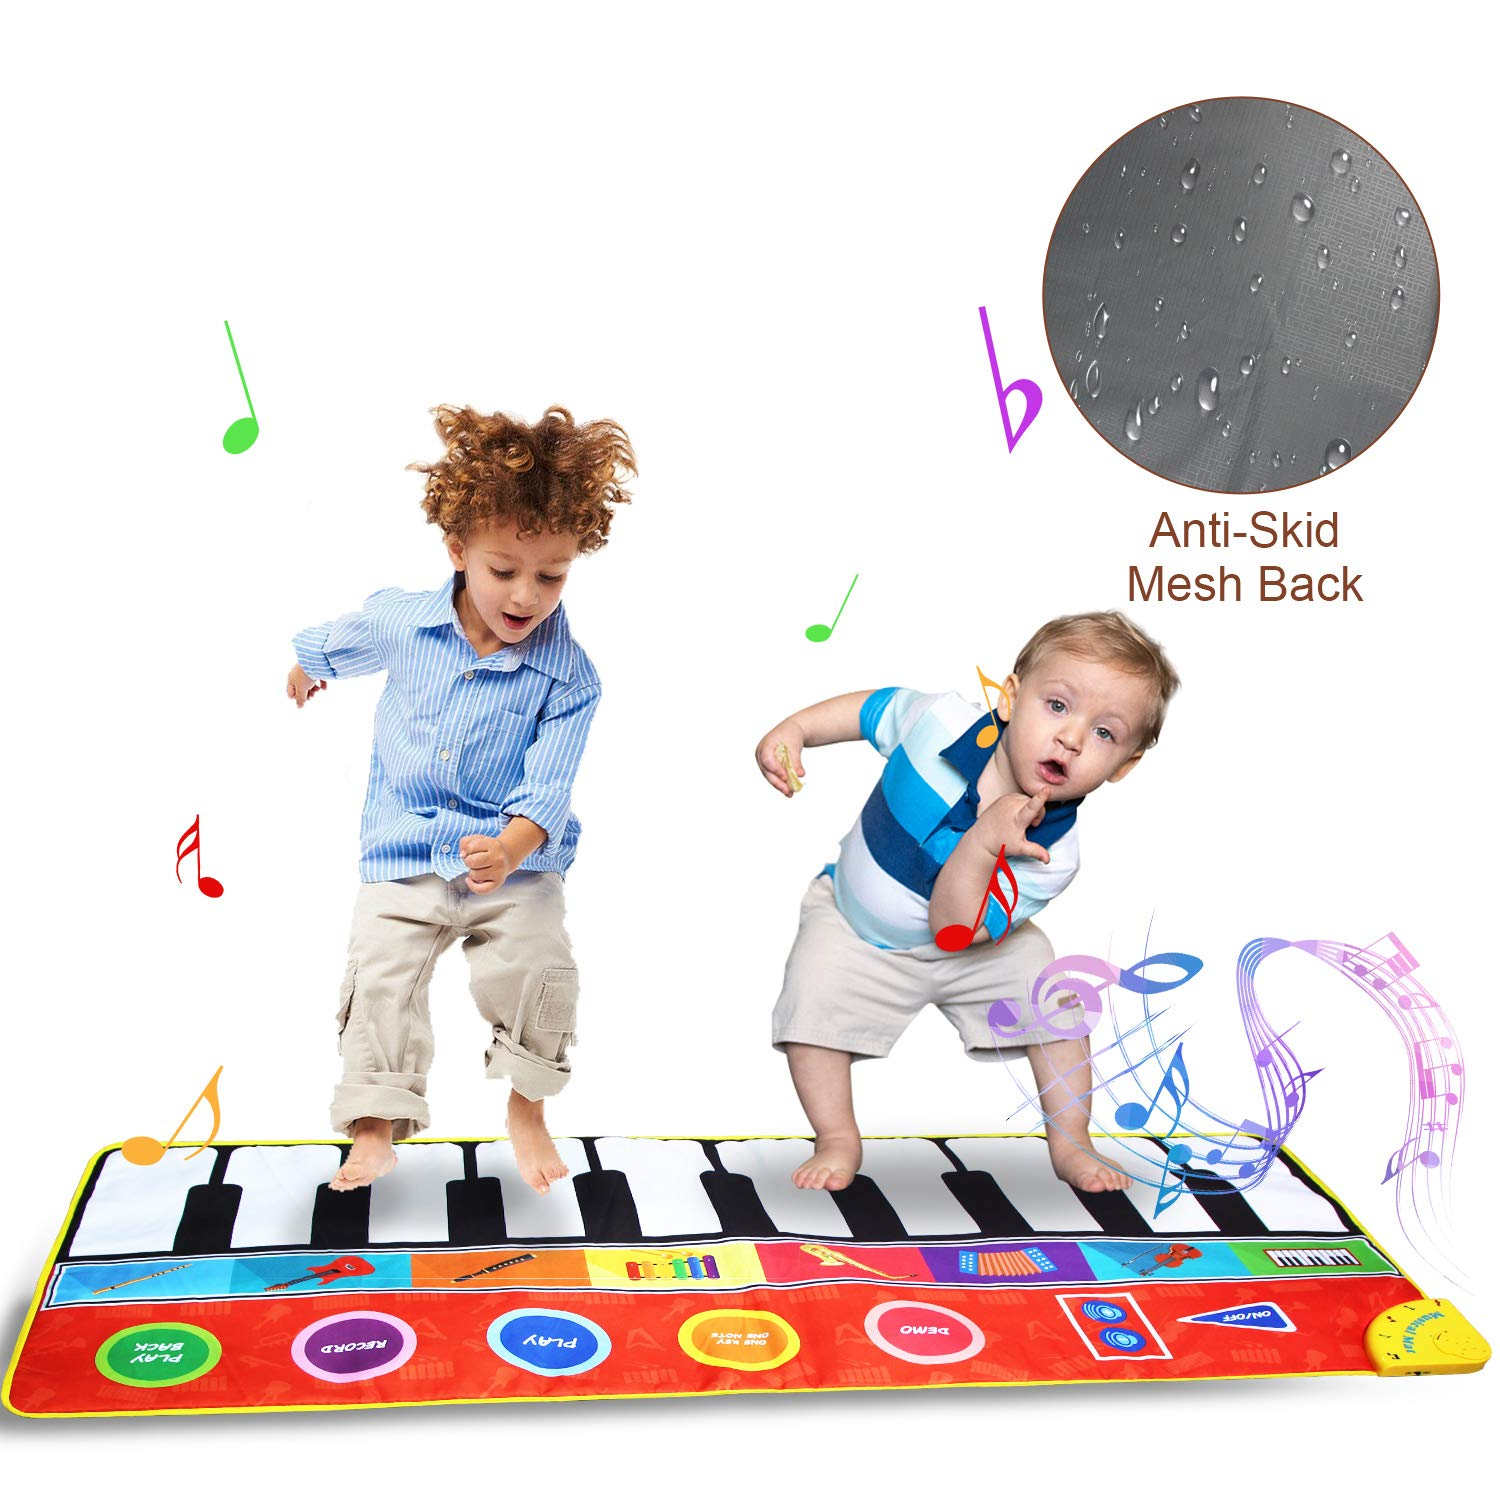 Jenilily Musical Dance Mat Anti-Skid Piano Electronic Keyboard Instrumental Dance Floor Interactive Music Mat Toys Musical Game Carpet Mat for Baby Shower Kid Children Gift Early Education by Jenilily (Image #1)